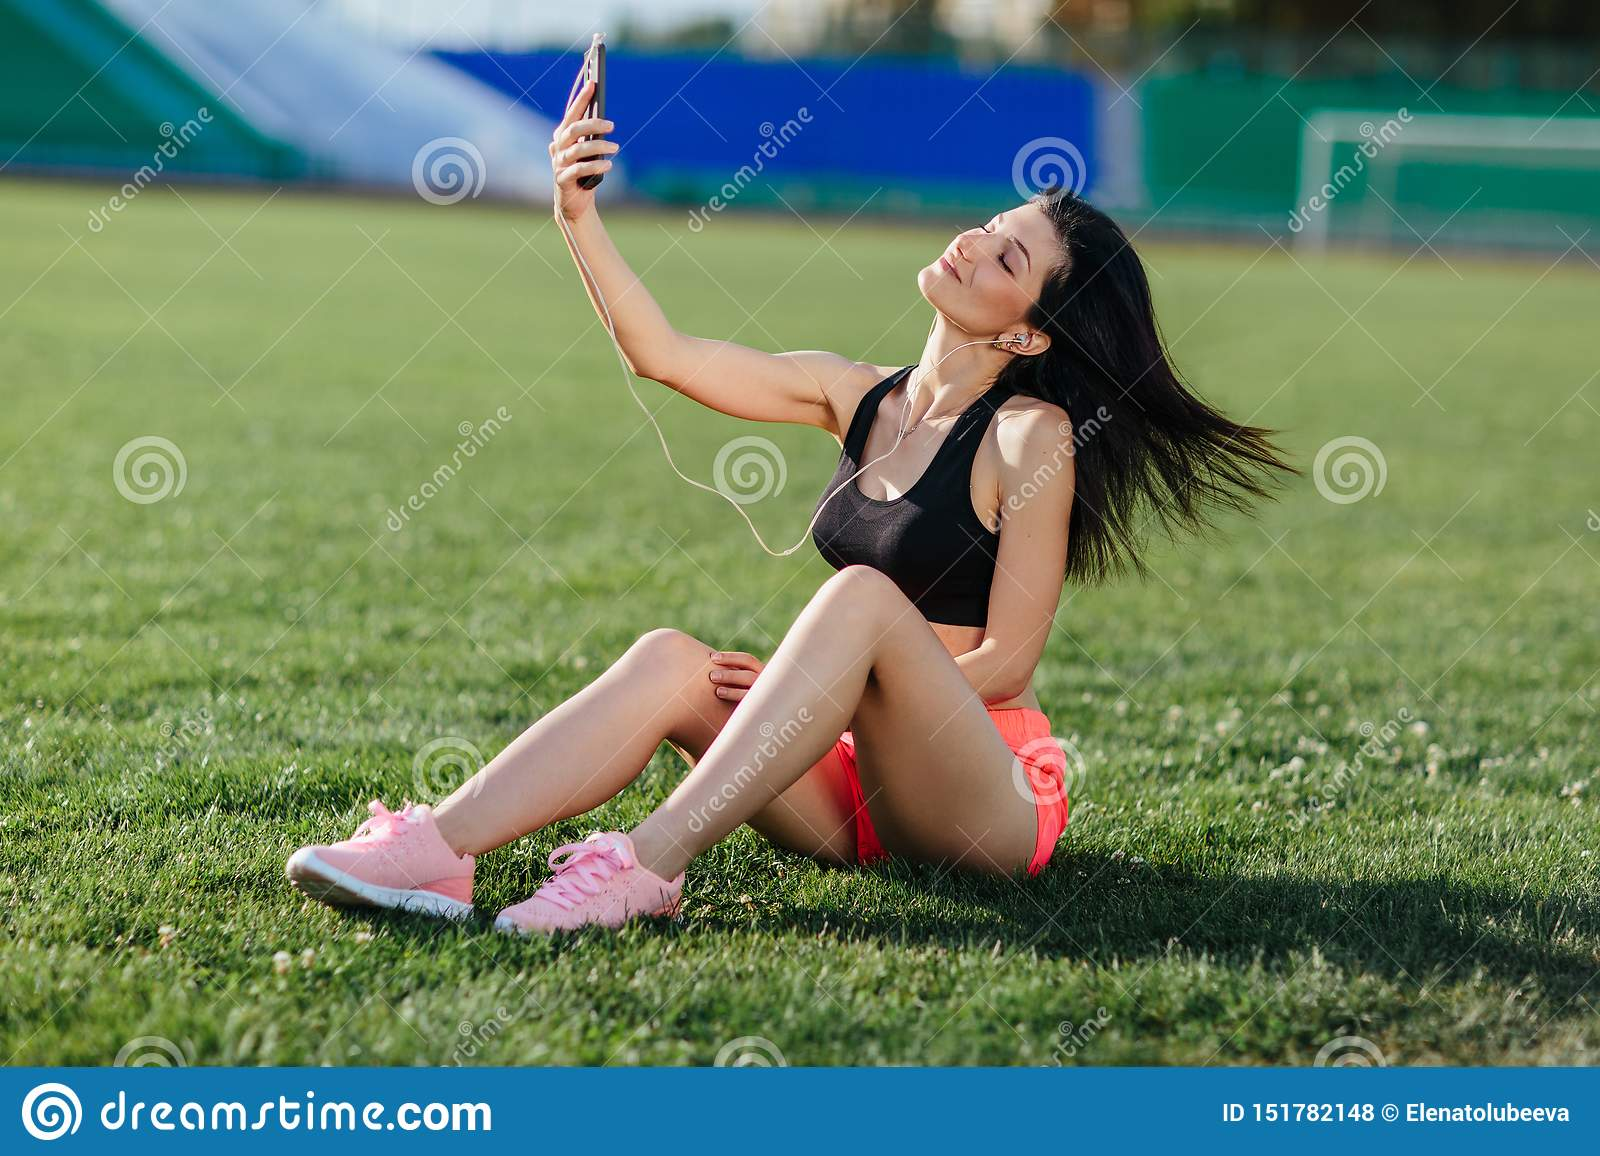 Young sporty joyful woman in sport dress sits on the grass, listens to music in earphones and does selfie-photo on the phone